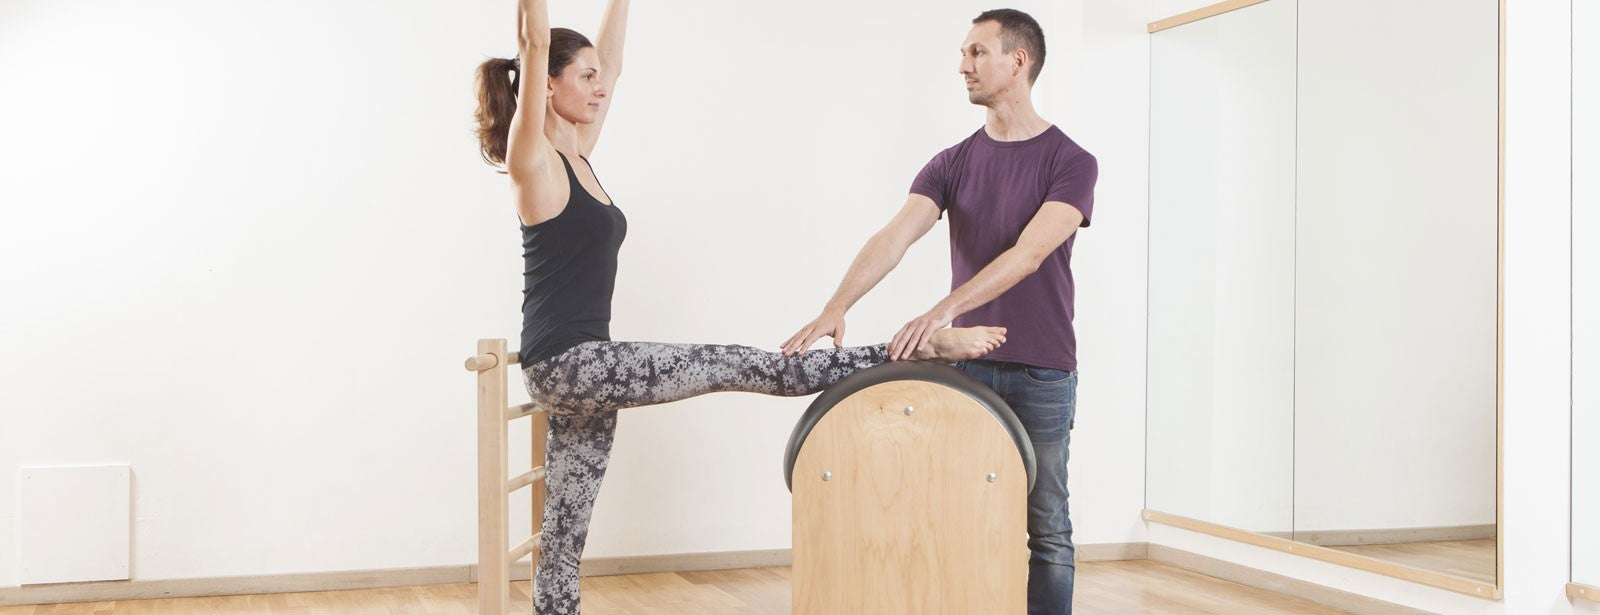 Pilates Barre Benefits